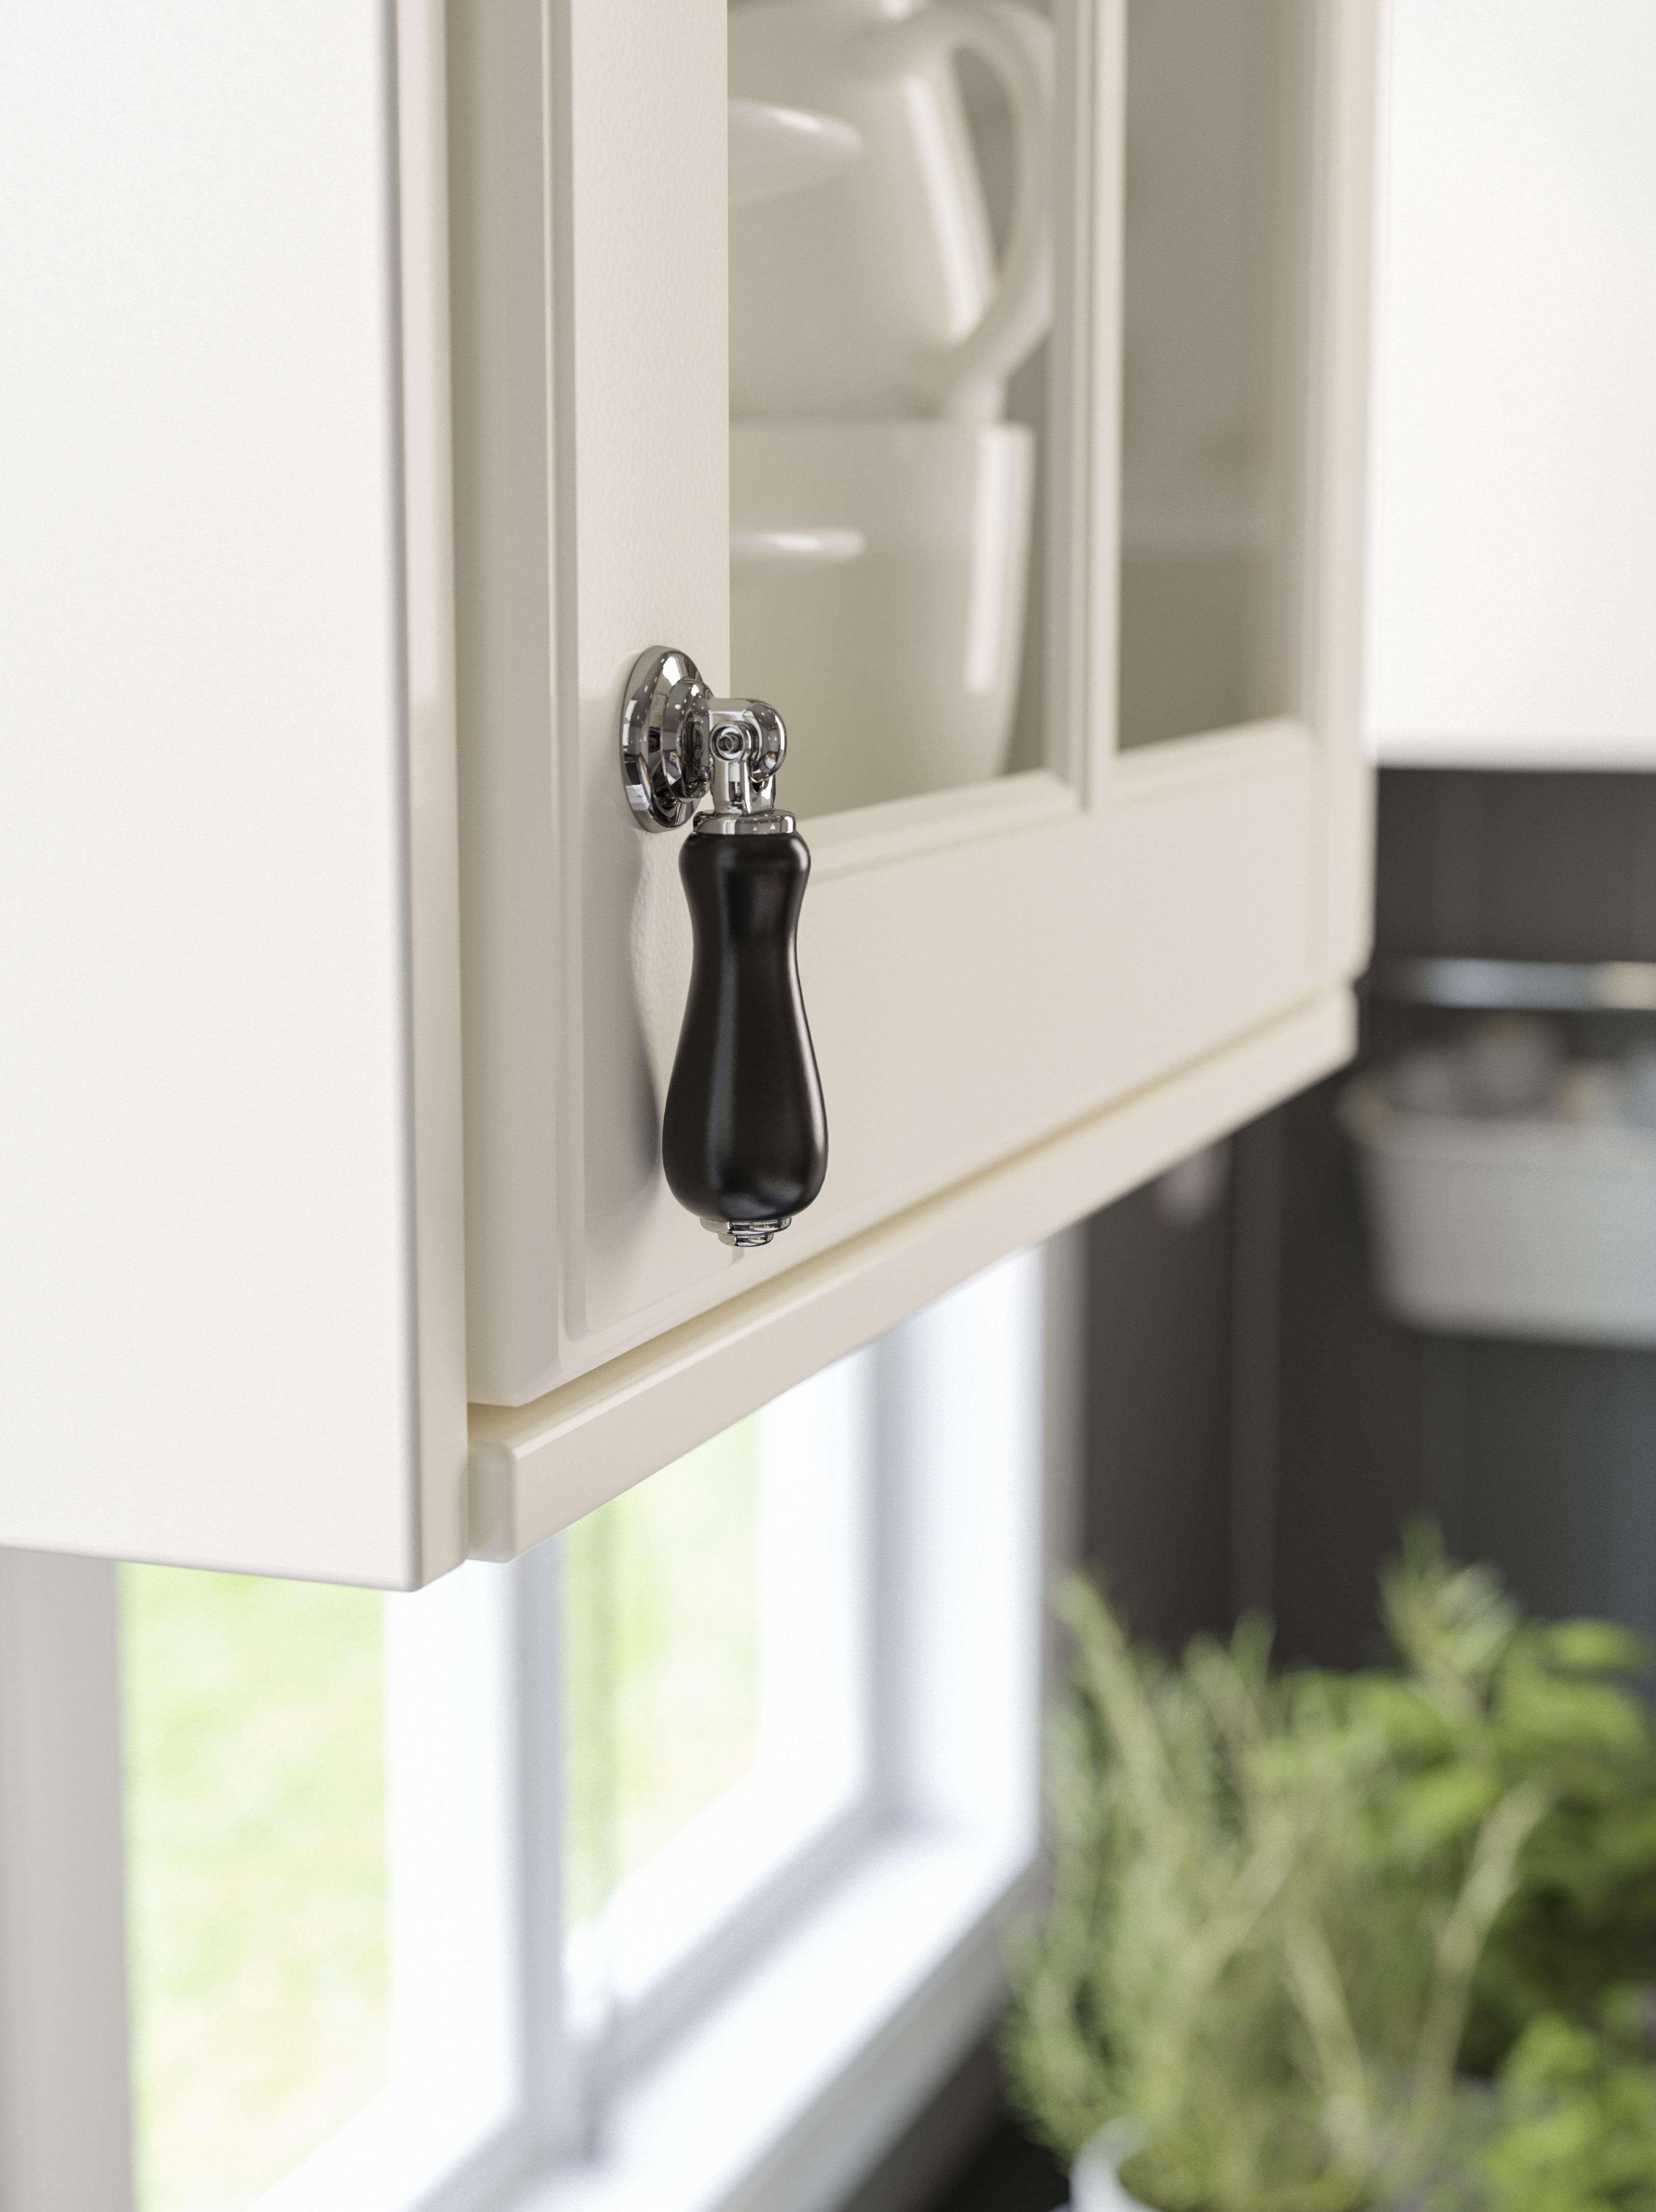 A close-up of an IKEA SKÄRHAMN smooth black drop handle with chrome plated edges on a white kitchen door.